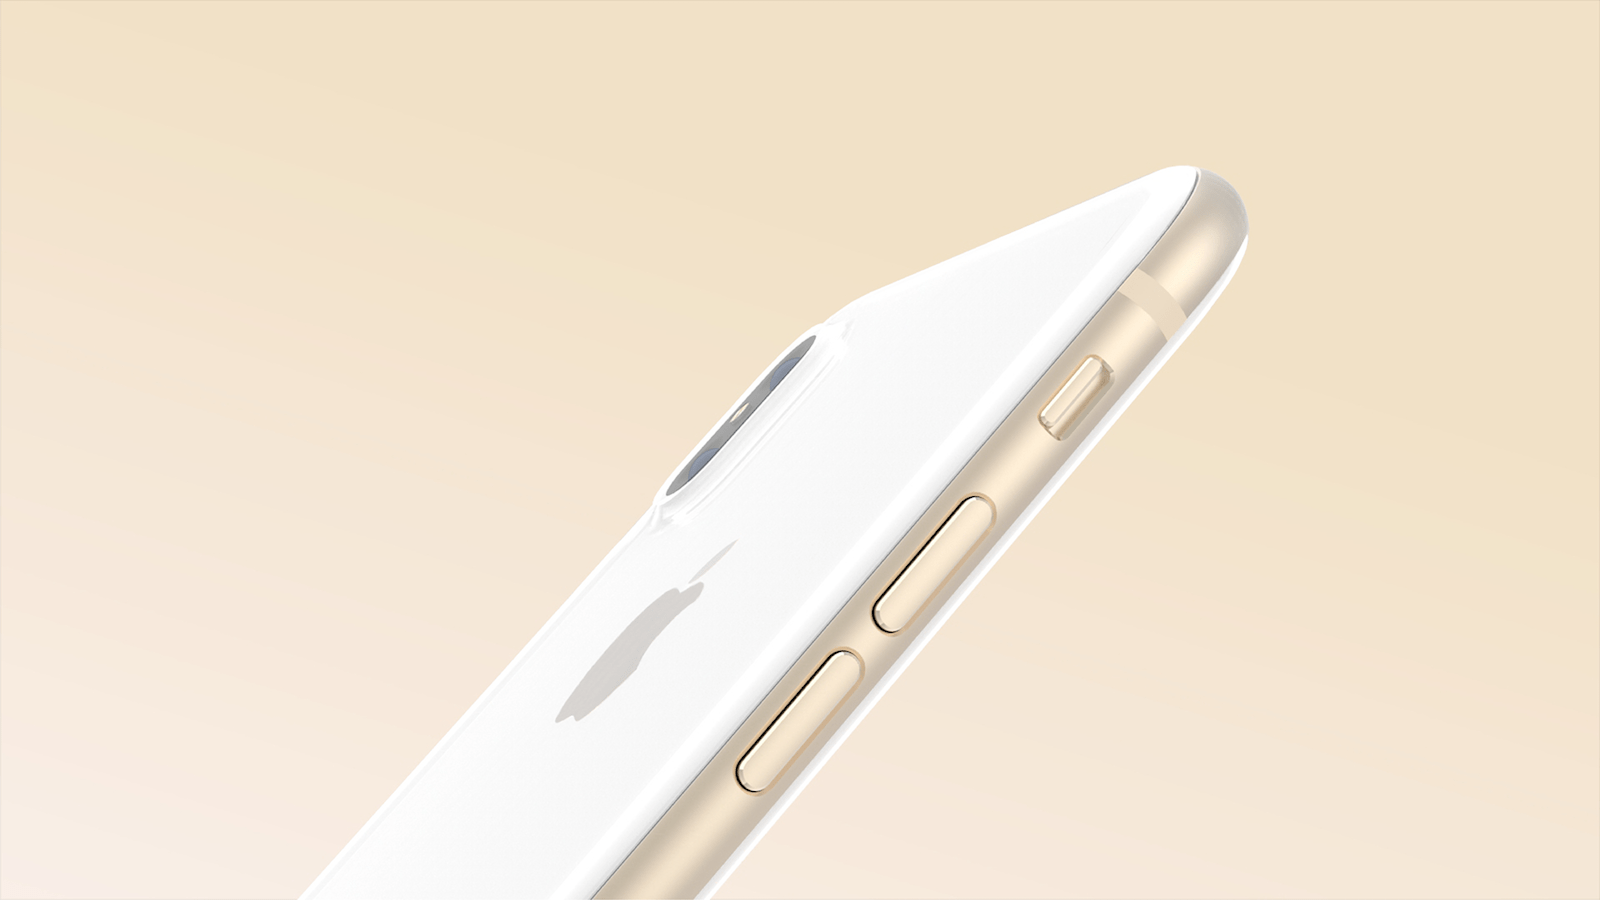 iphone-8-hero-images-concept-3.png